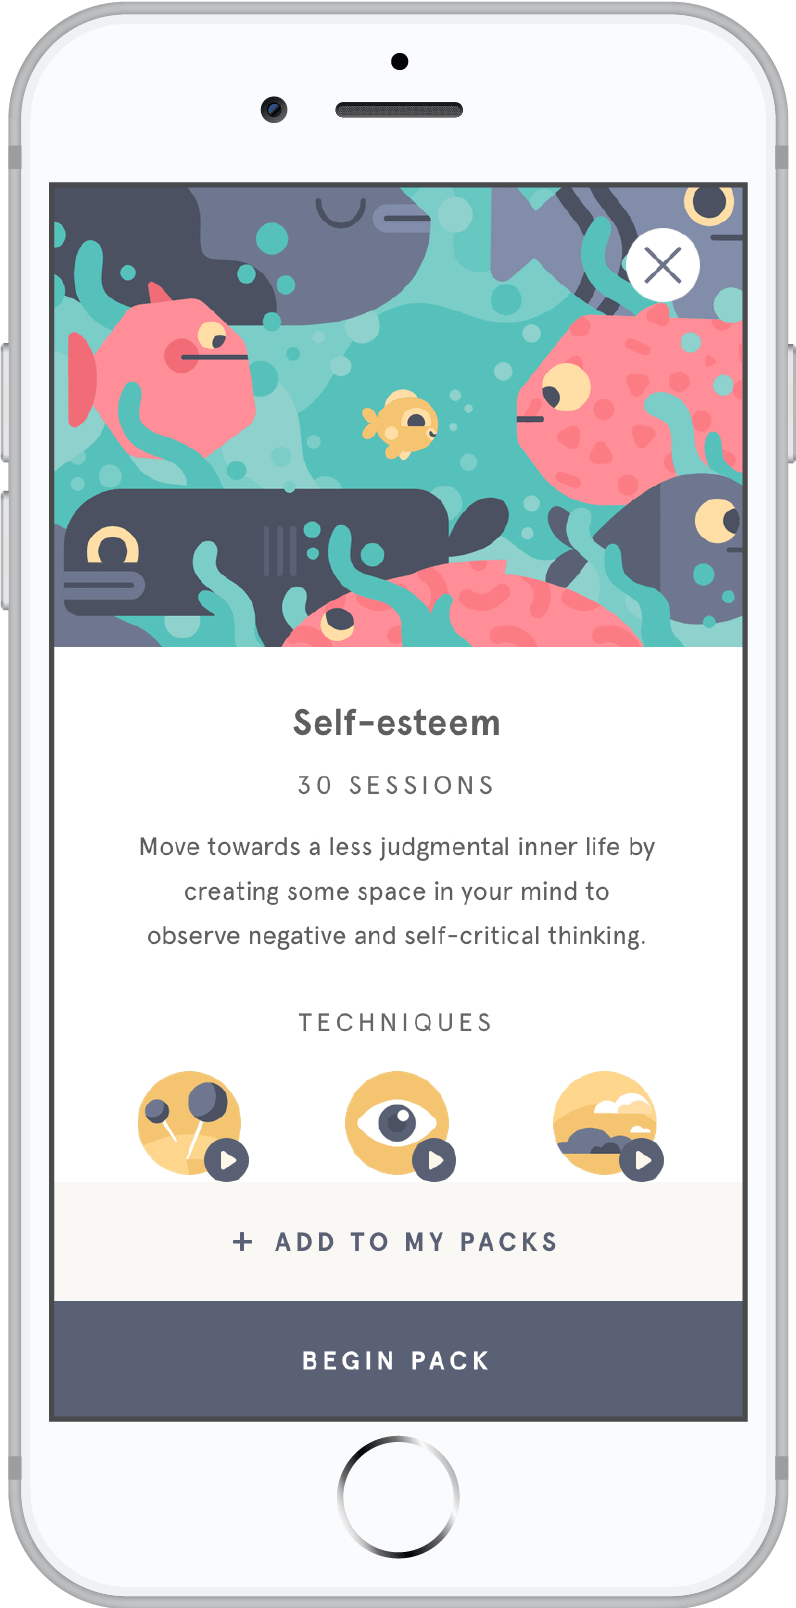 A meditation app on a smartphone